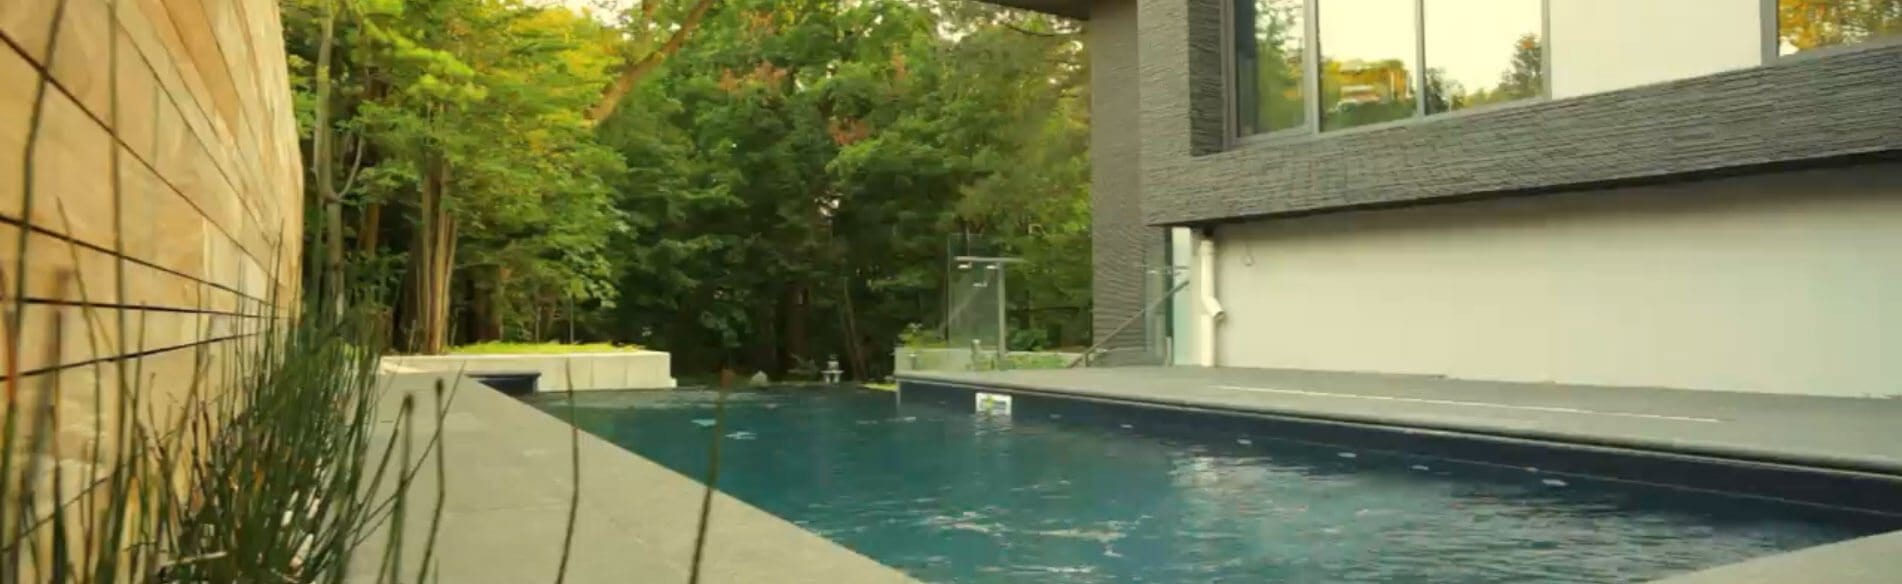 modern home pool | Kelowna Life Real Estate